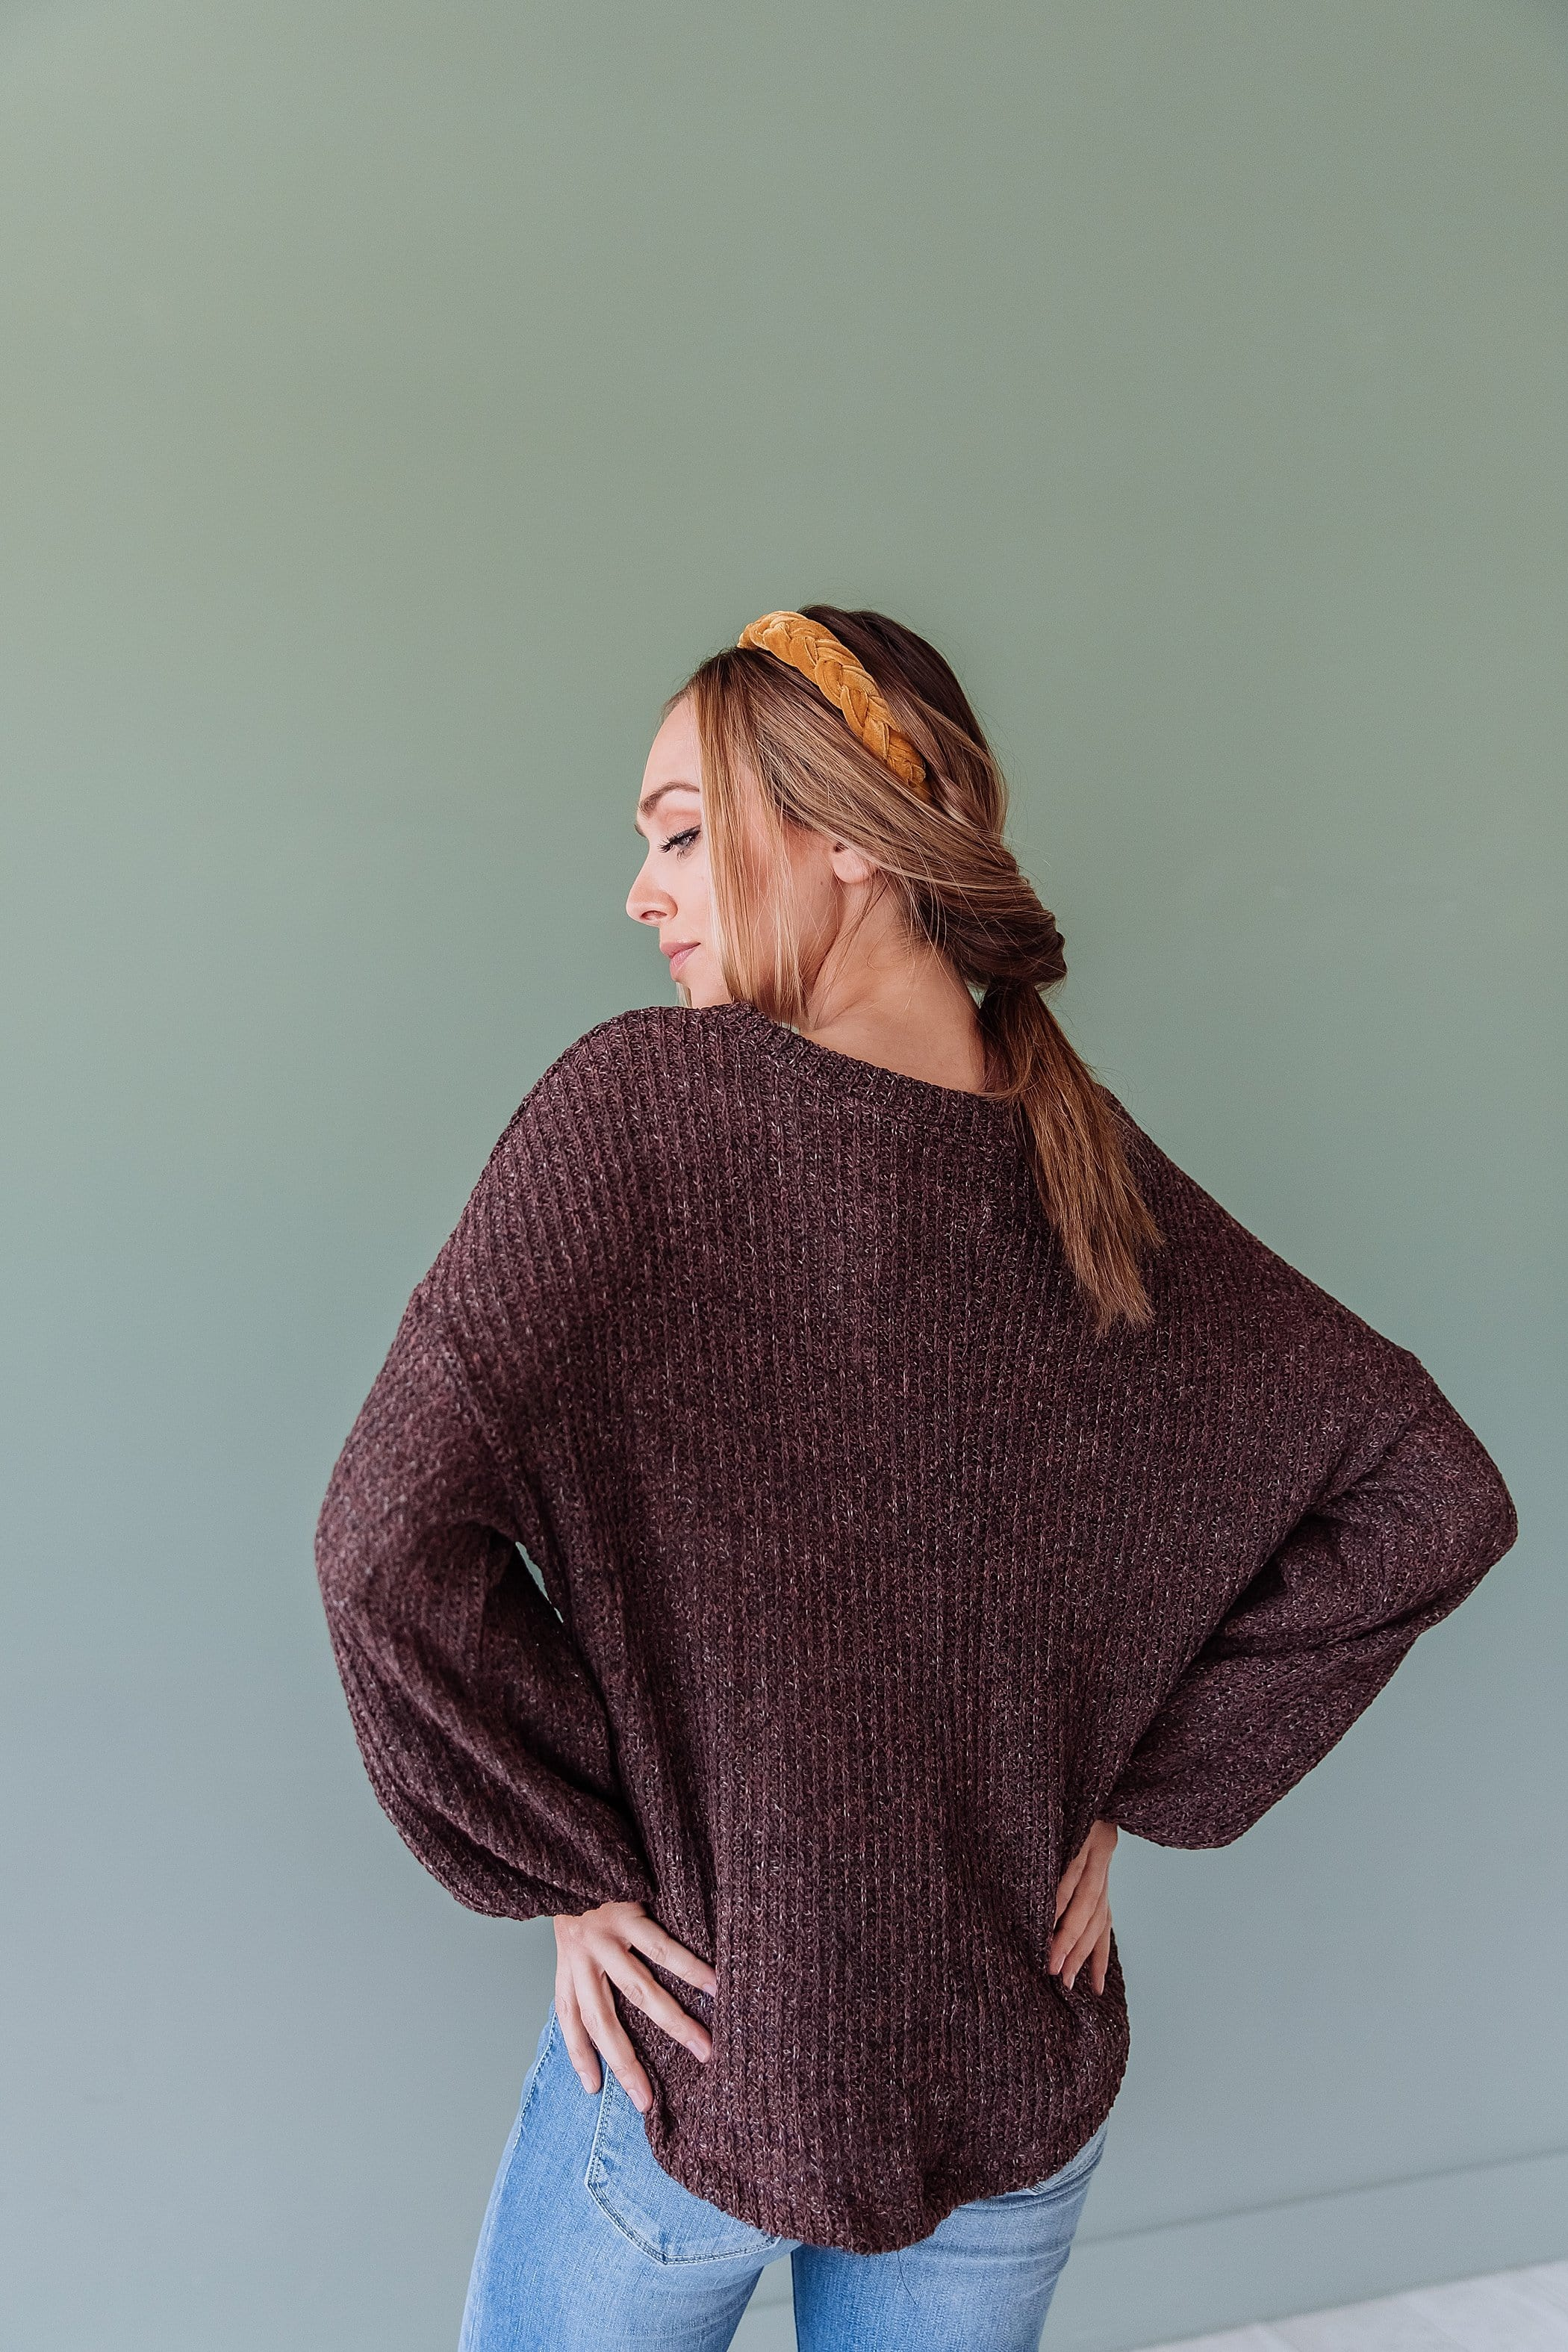 The Dallas Knit Sweater in Brown